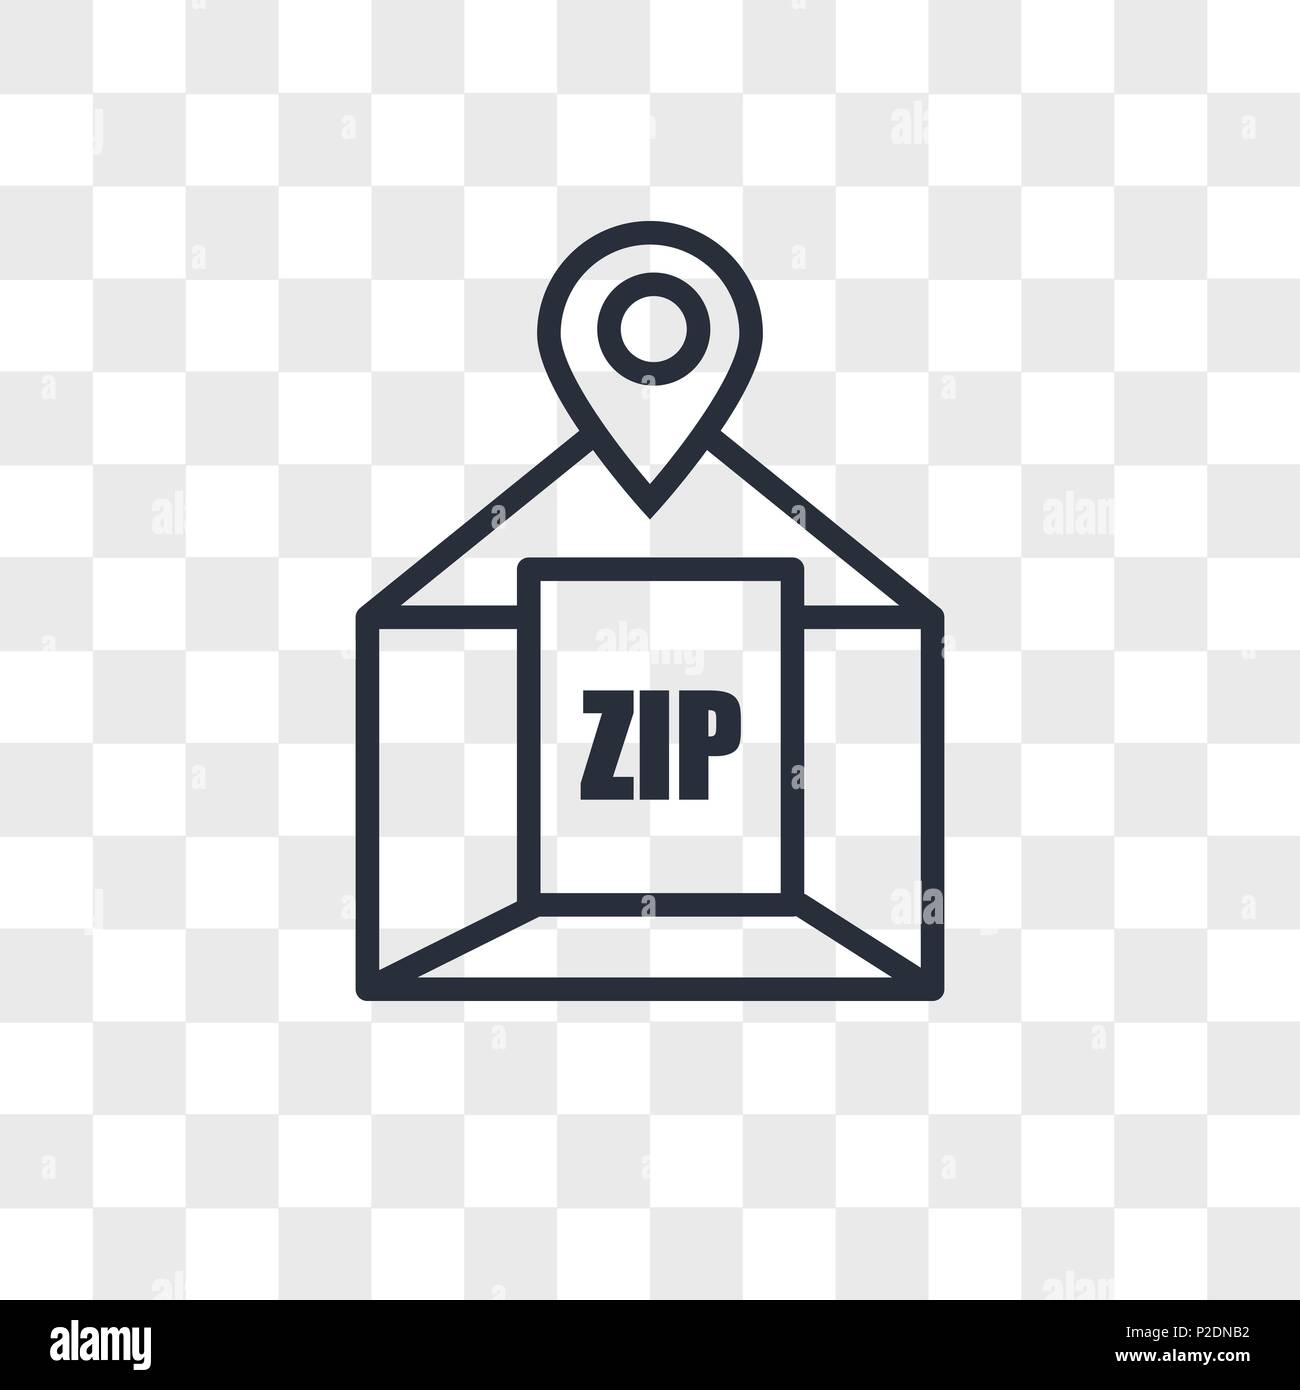 zip code vector icon isolated on transparent background, zip